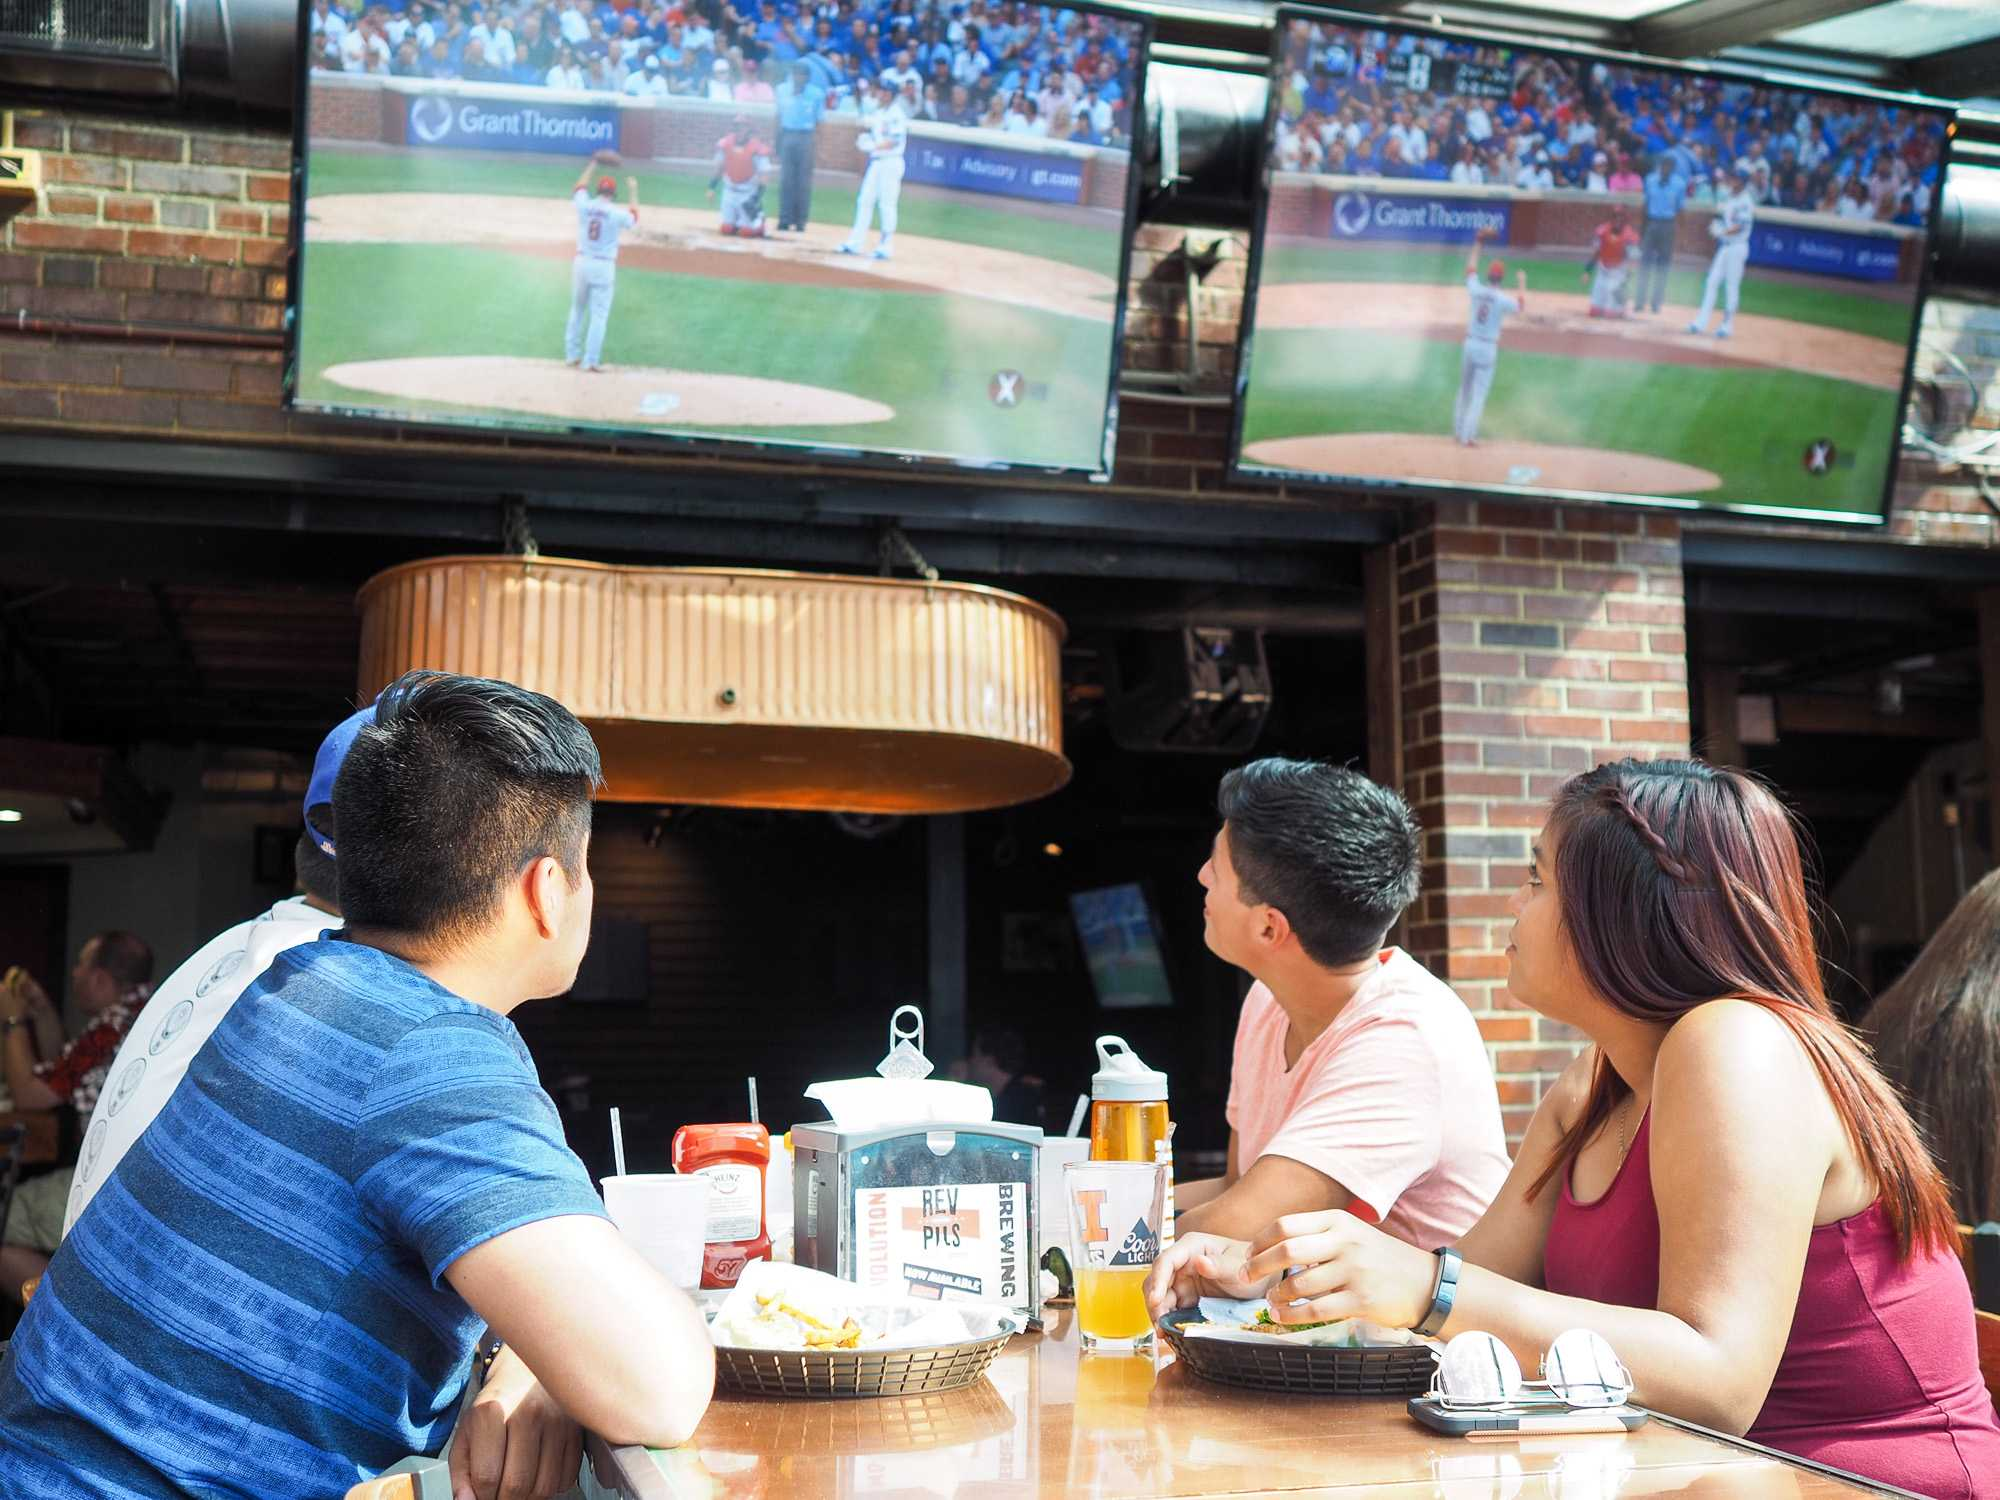 Students gather at Joe's Brewery to watch the Cubs game on September 23, 2016.